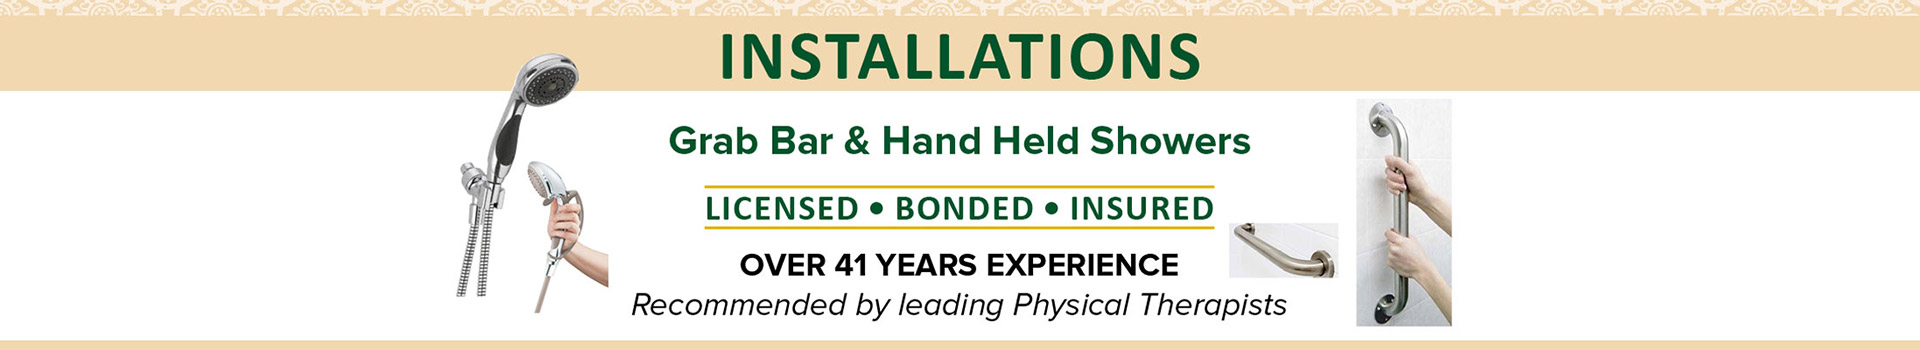 grab-bar-installations-banner